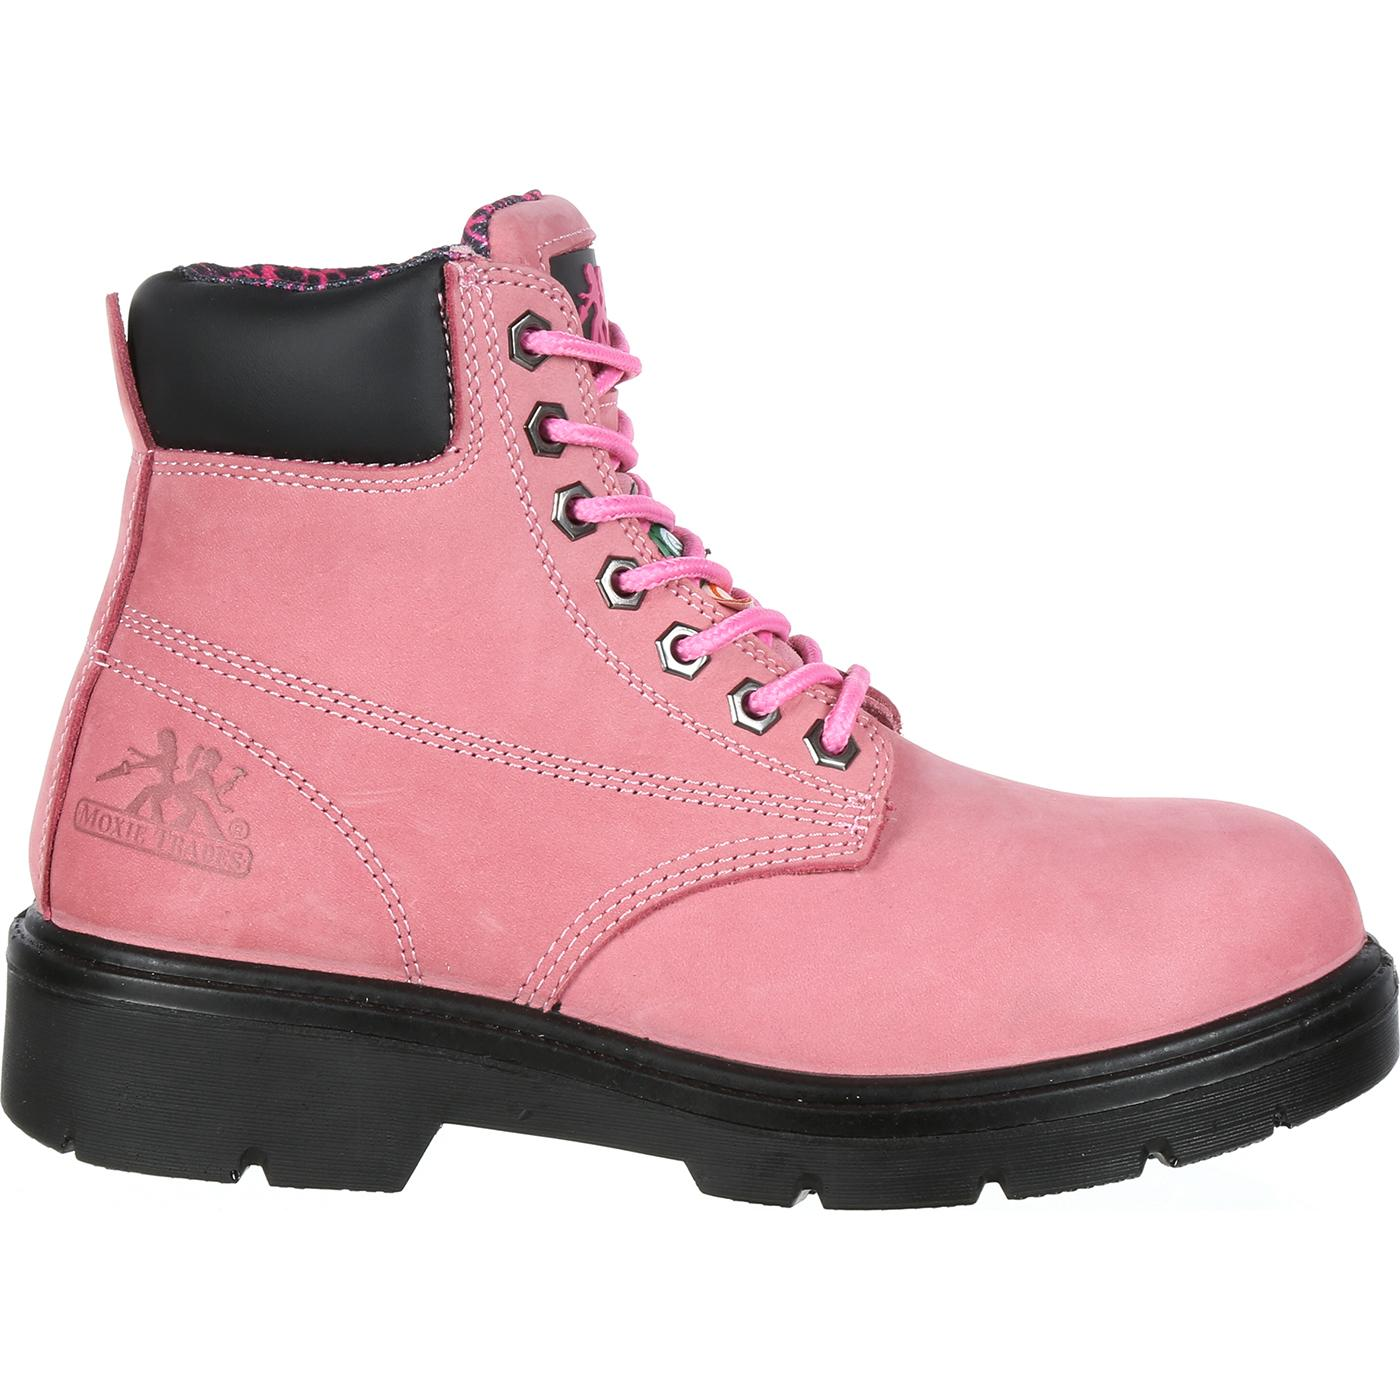 bb4c5902ea7 Moxie Trades Women's Alice Steel Toe CSA-Approved Puncture-Resistant Work  Boot